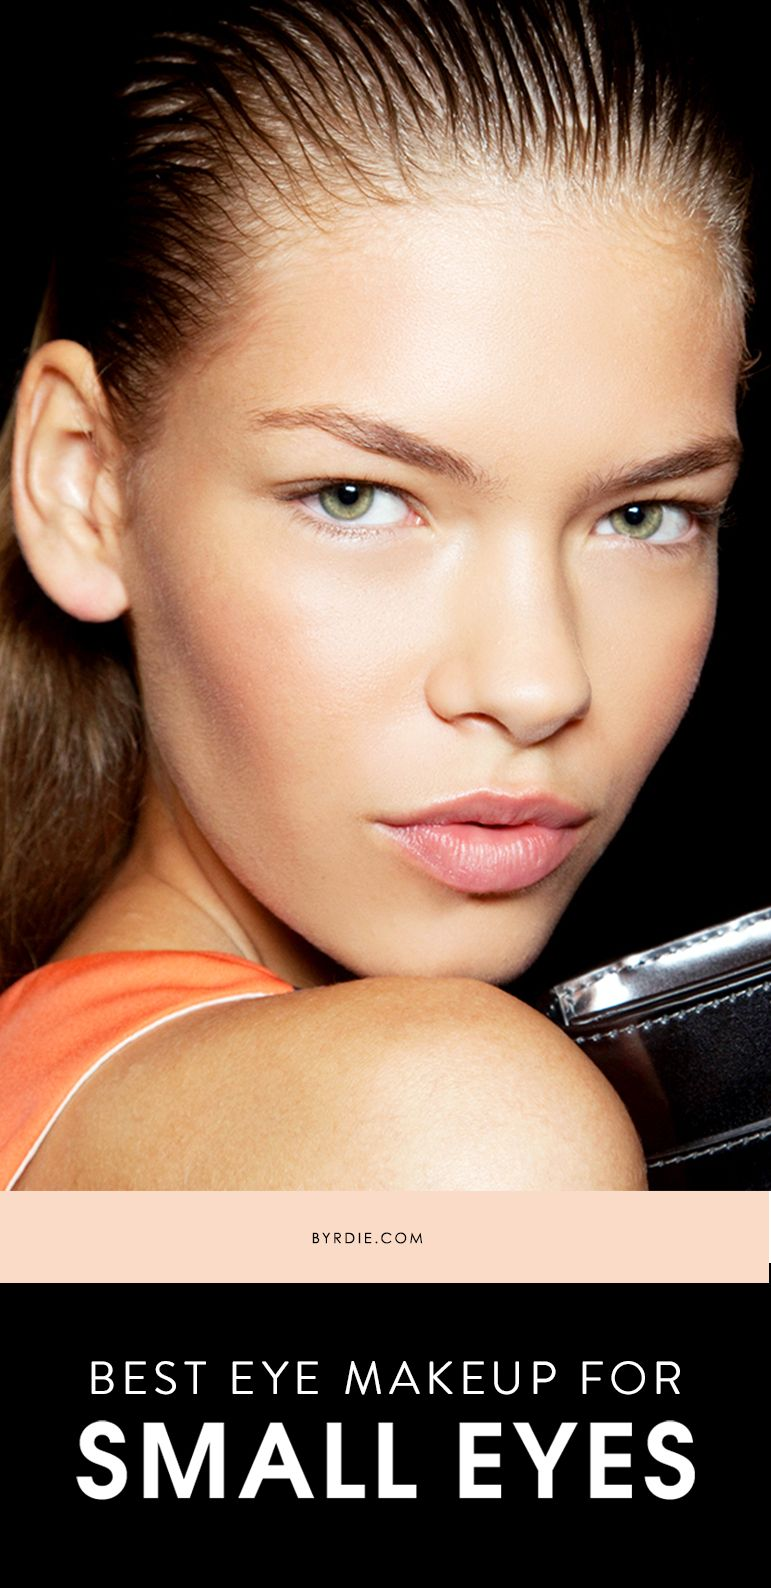 The Best Eye Makeup Tricks For Girls With Small Eyes Via Byrdiebeauty Eyes Tips